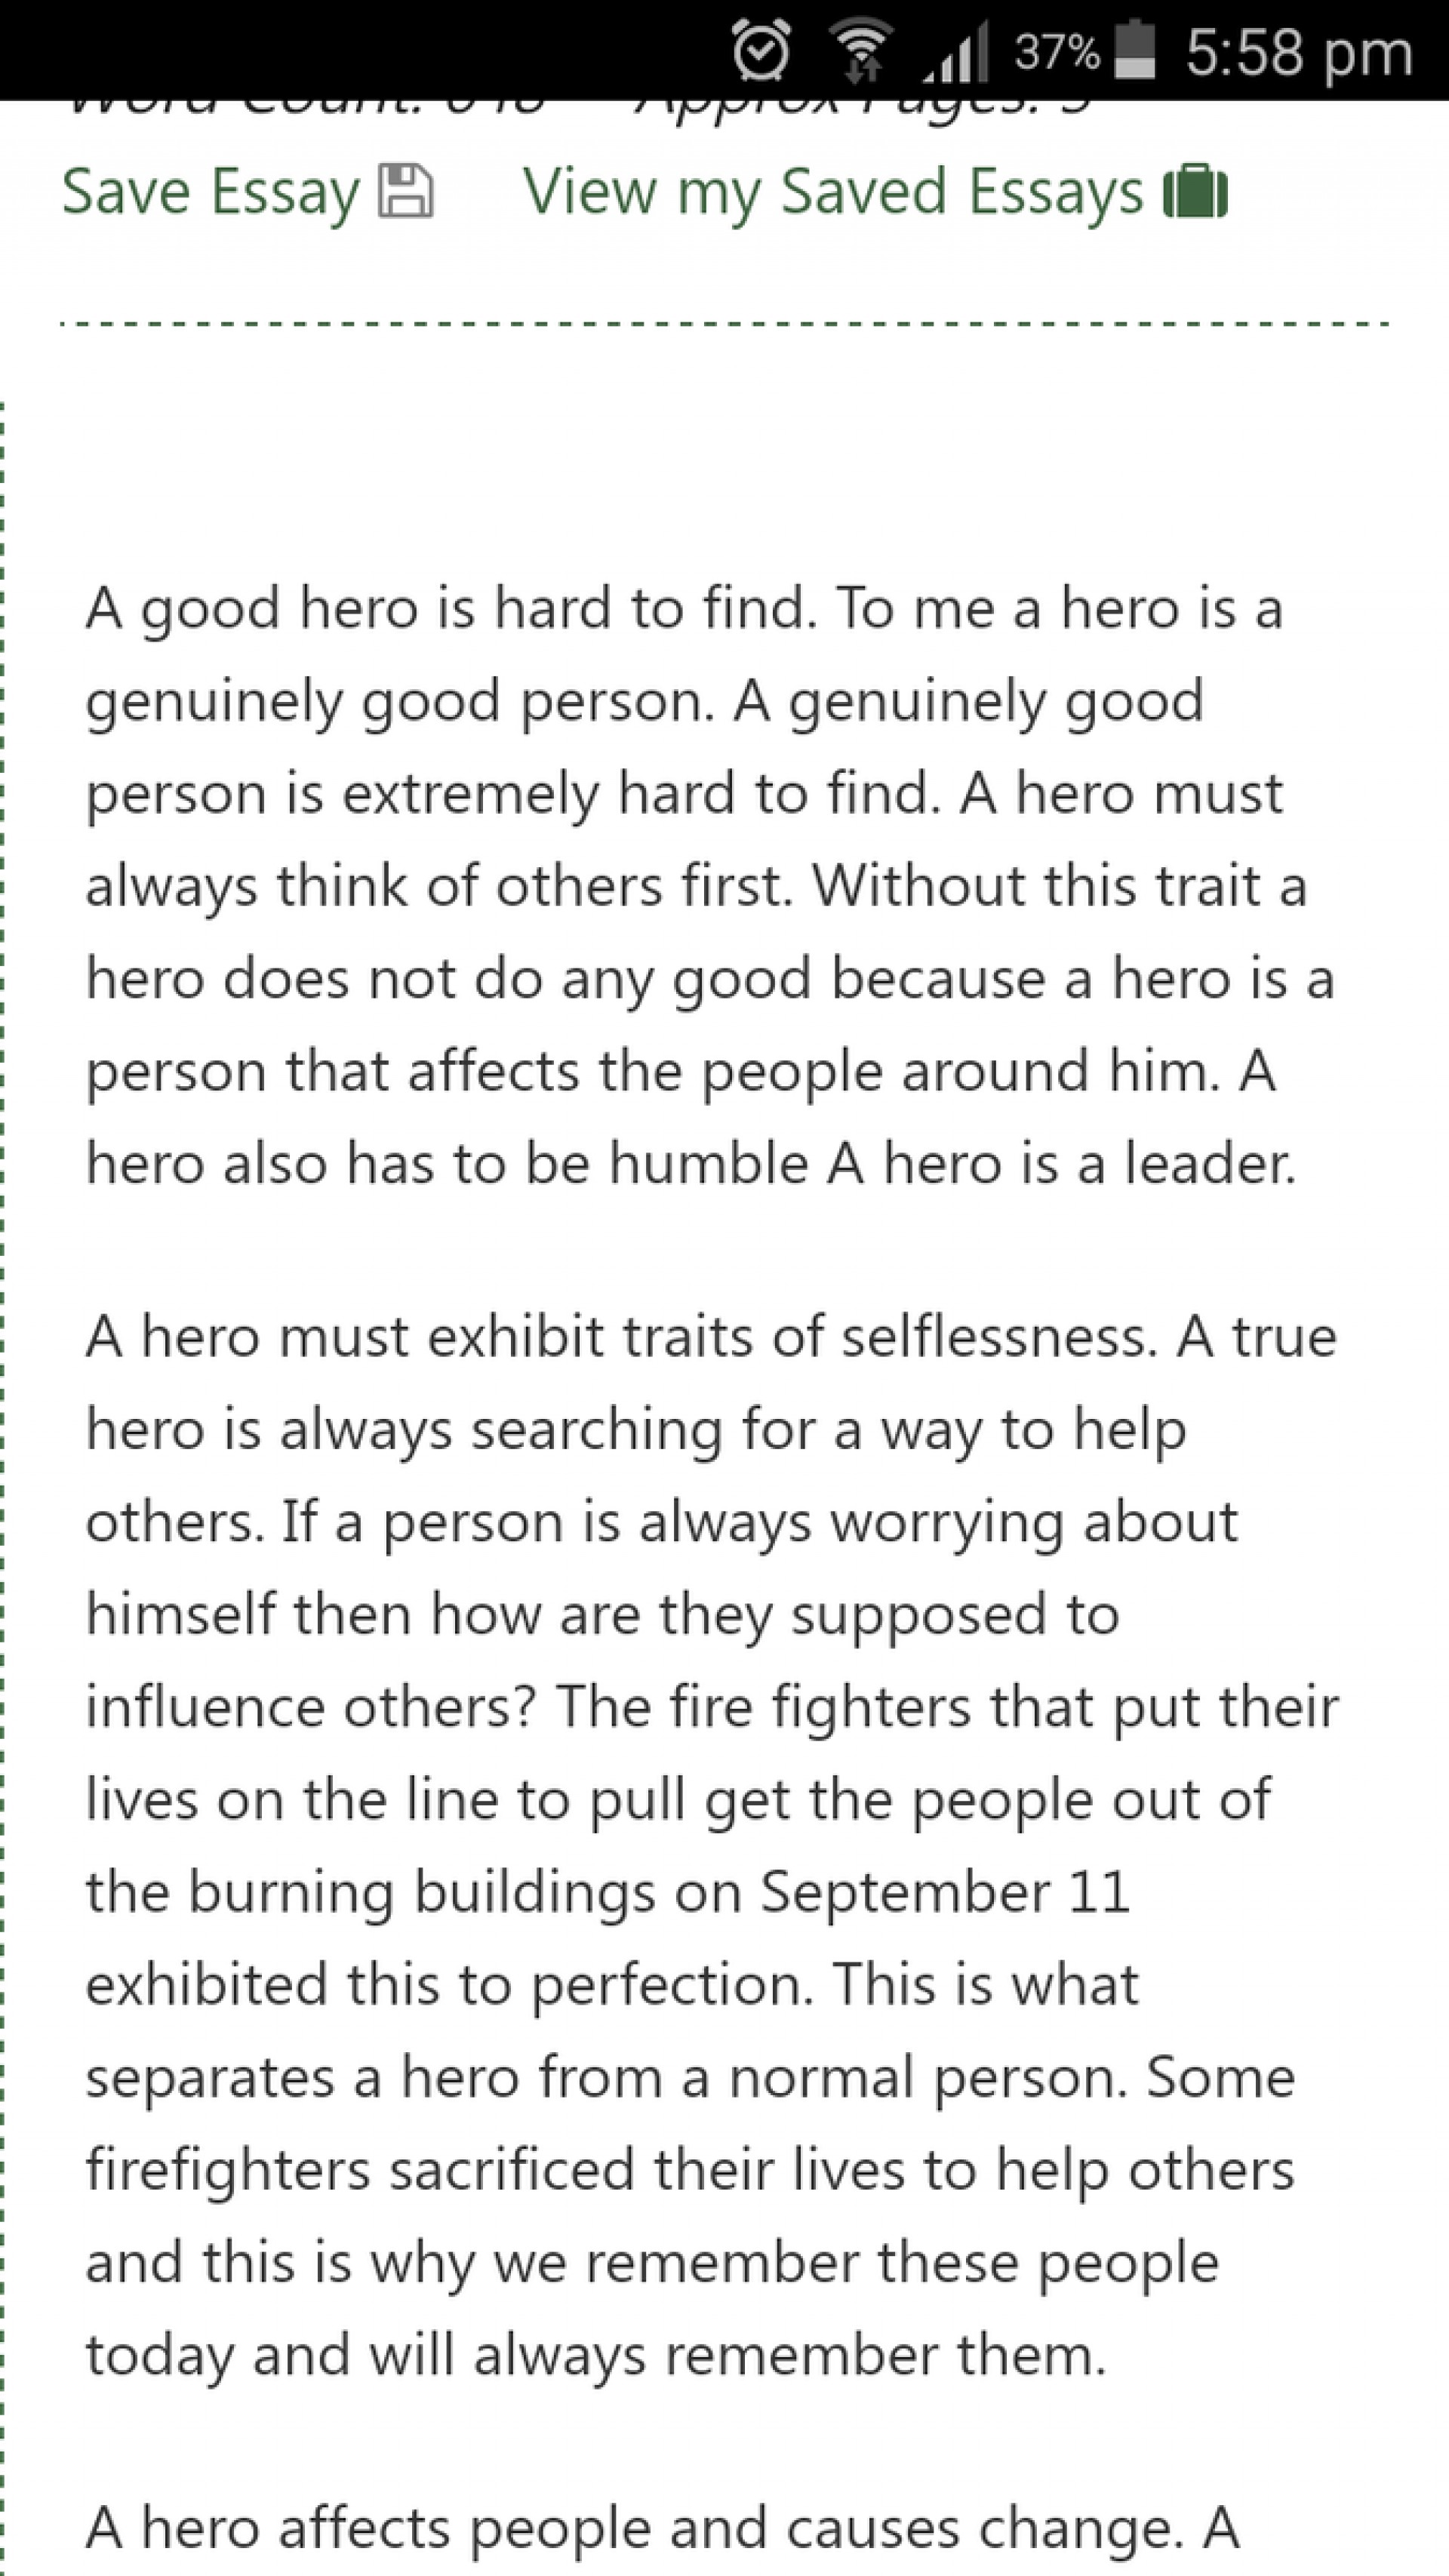 015 Essay Example My Real Life Hero Fascinating Unsung In Secret As A 1920